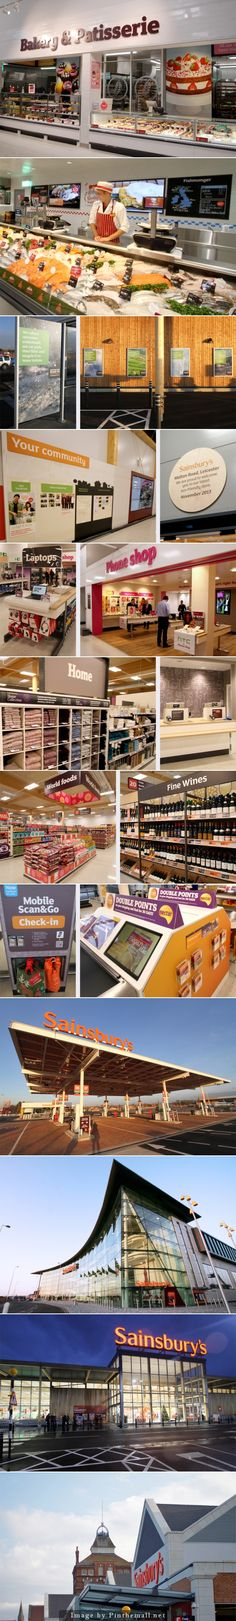 Osainsbury's once again set a new benchmark for supermarket retailing with their latest store which opened in Leicester in November 2013. - created on 2014-09-13 13:27:38